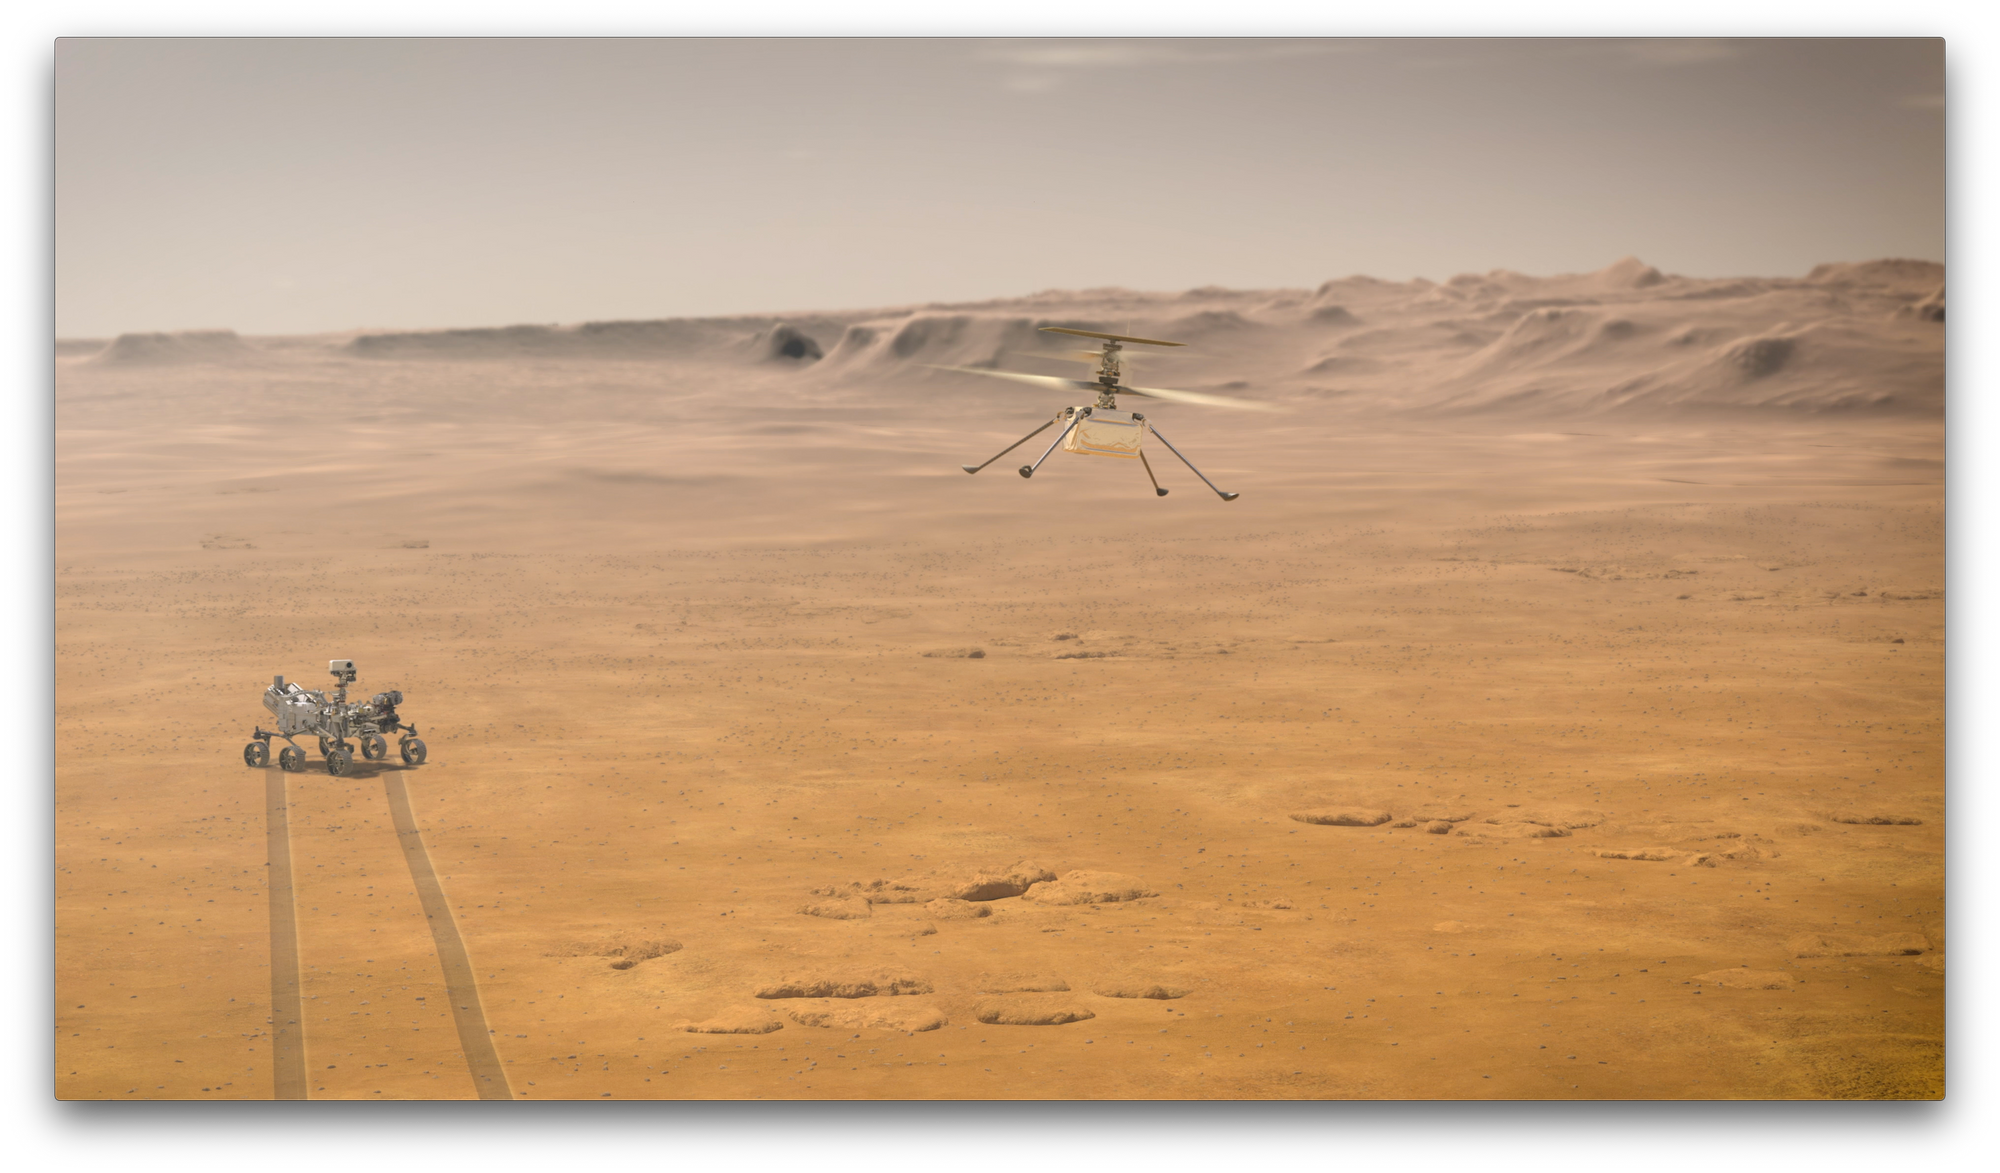 Illustrative image of Mars Helicopter and Perseverance rover on the Red Planet